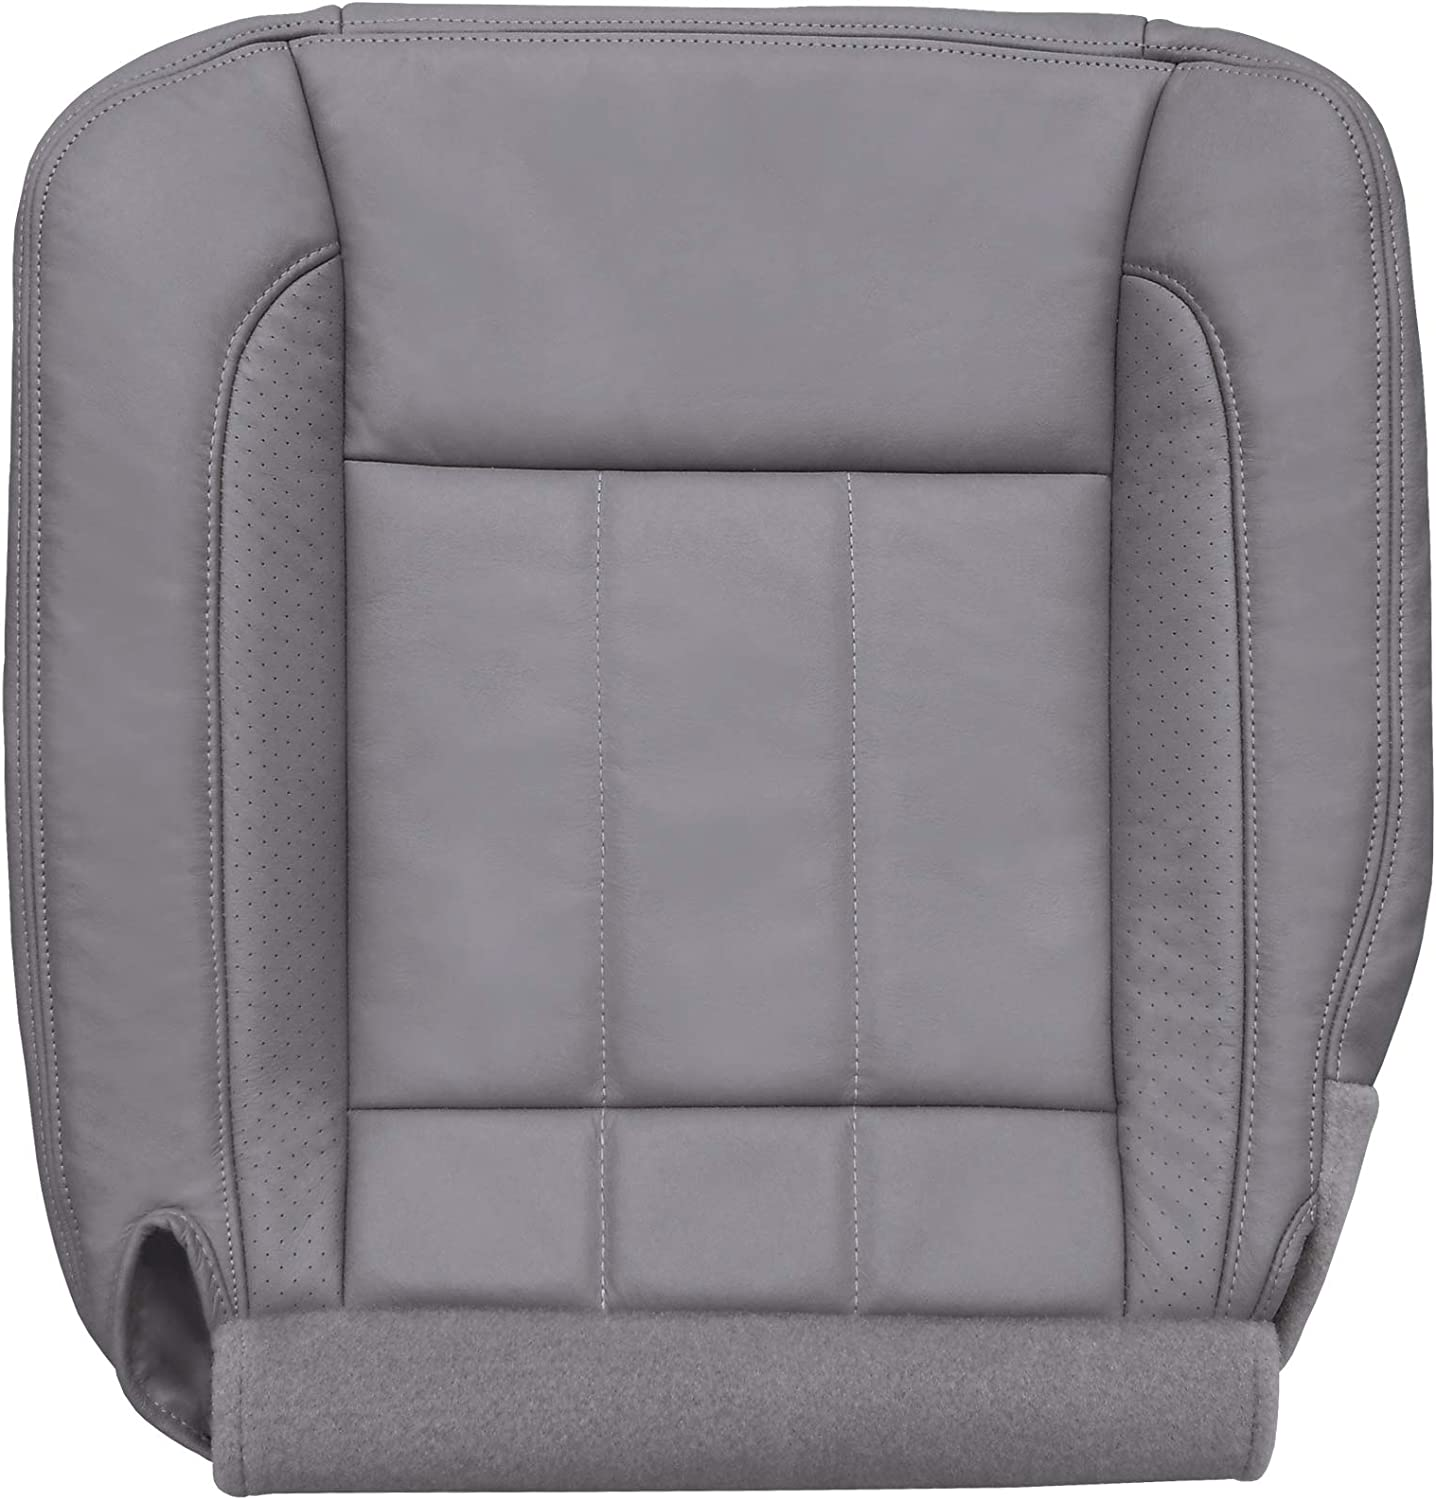 Max 74% OFF The Seat Shop Driver Bottom Cover wi Perforated NEW P1 Leather